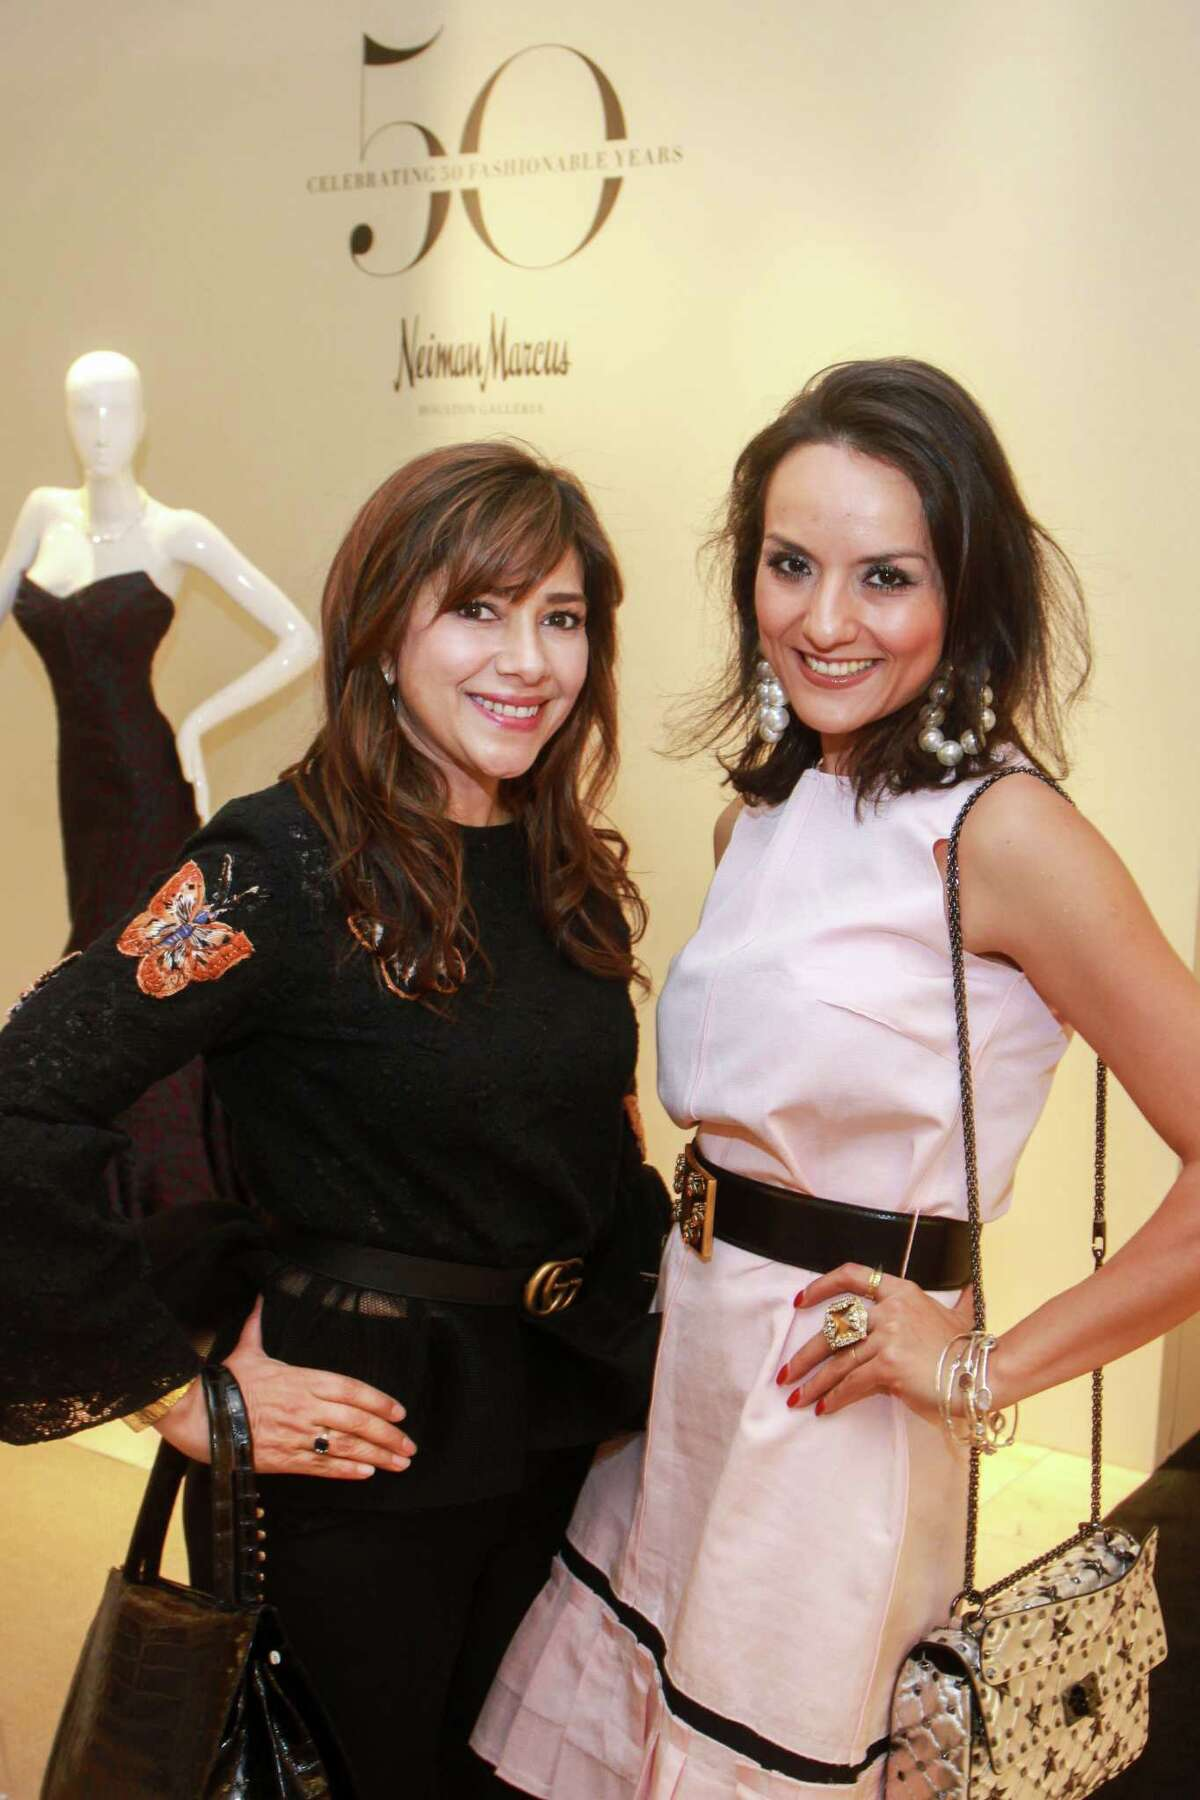 Blanca Jolly, left, and Luisa Nadarajah at the Zac Posen event at Neiman Marcus in Houston on October 23, 2019.